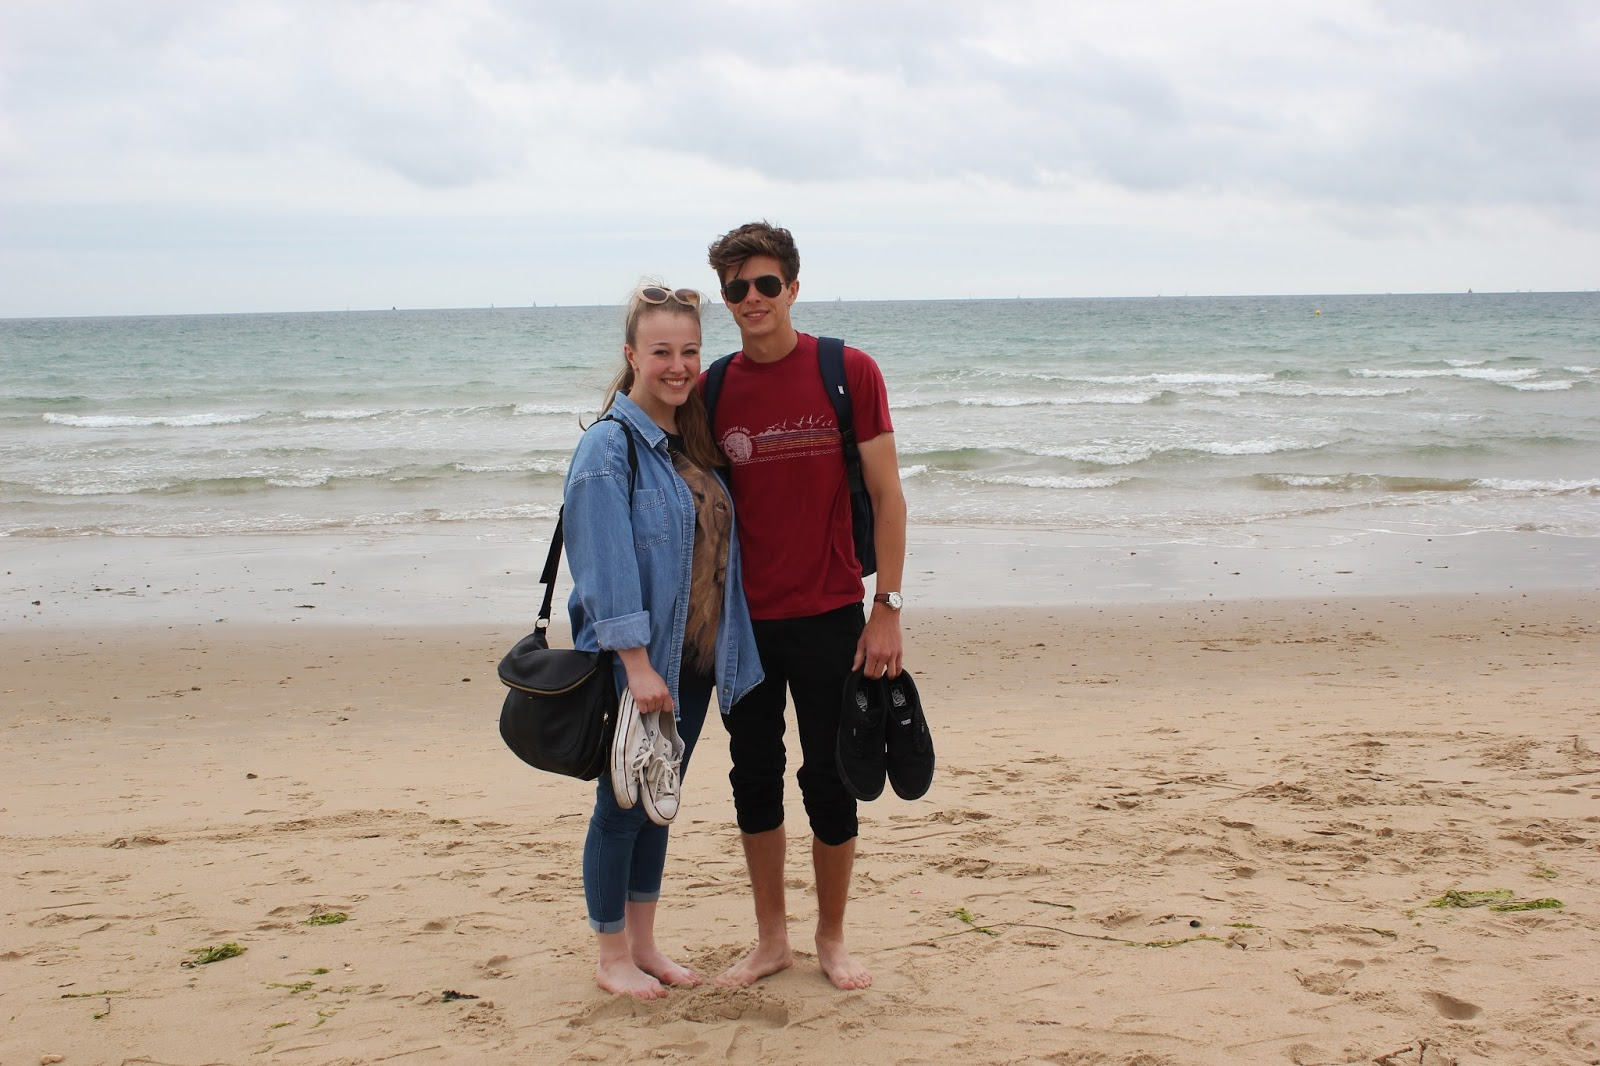 georgina-minter-brown-georgie-frequencies-holiday-bournemouth-birthday-trip-sea-coast-ocean-couple-boyfriend